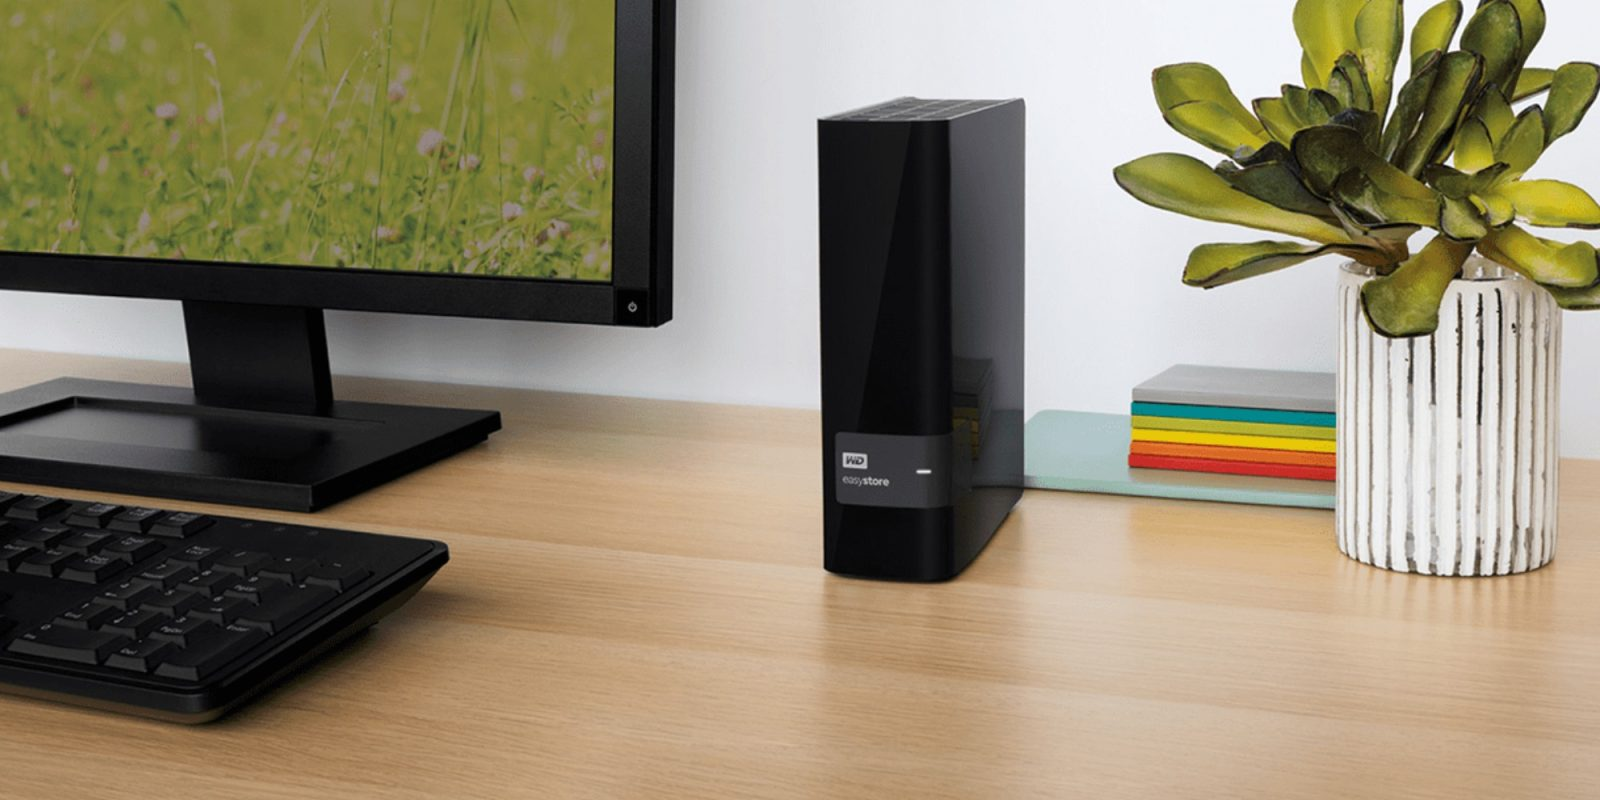 Score 10TB of USB 3.0 storage with WD's desktop hard drive at $160 (Save 20%)